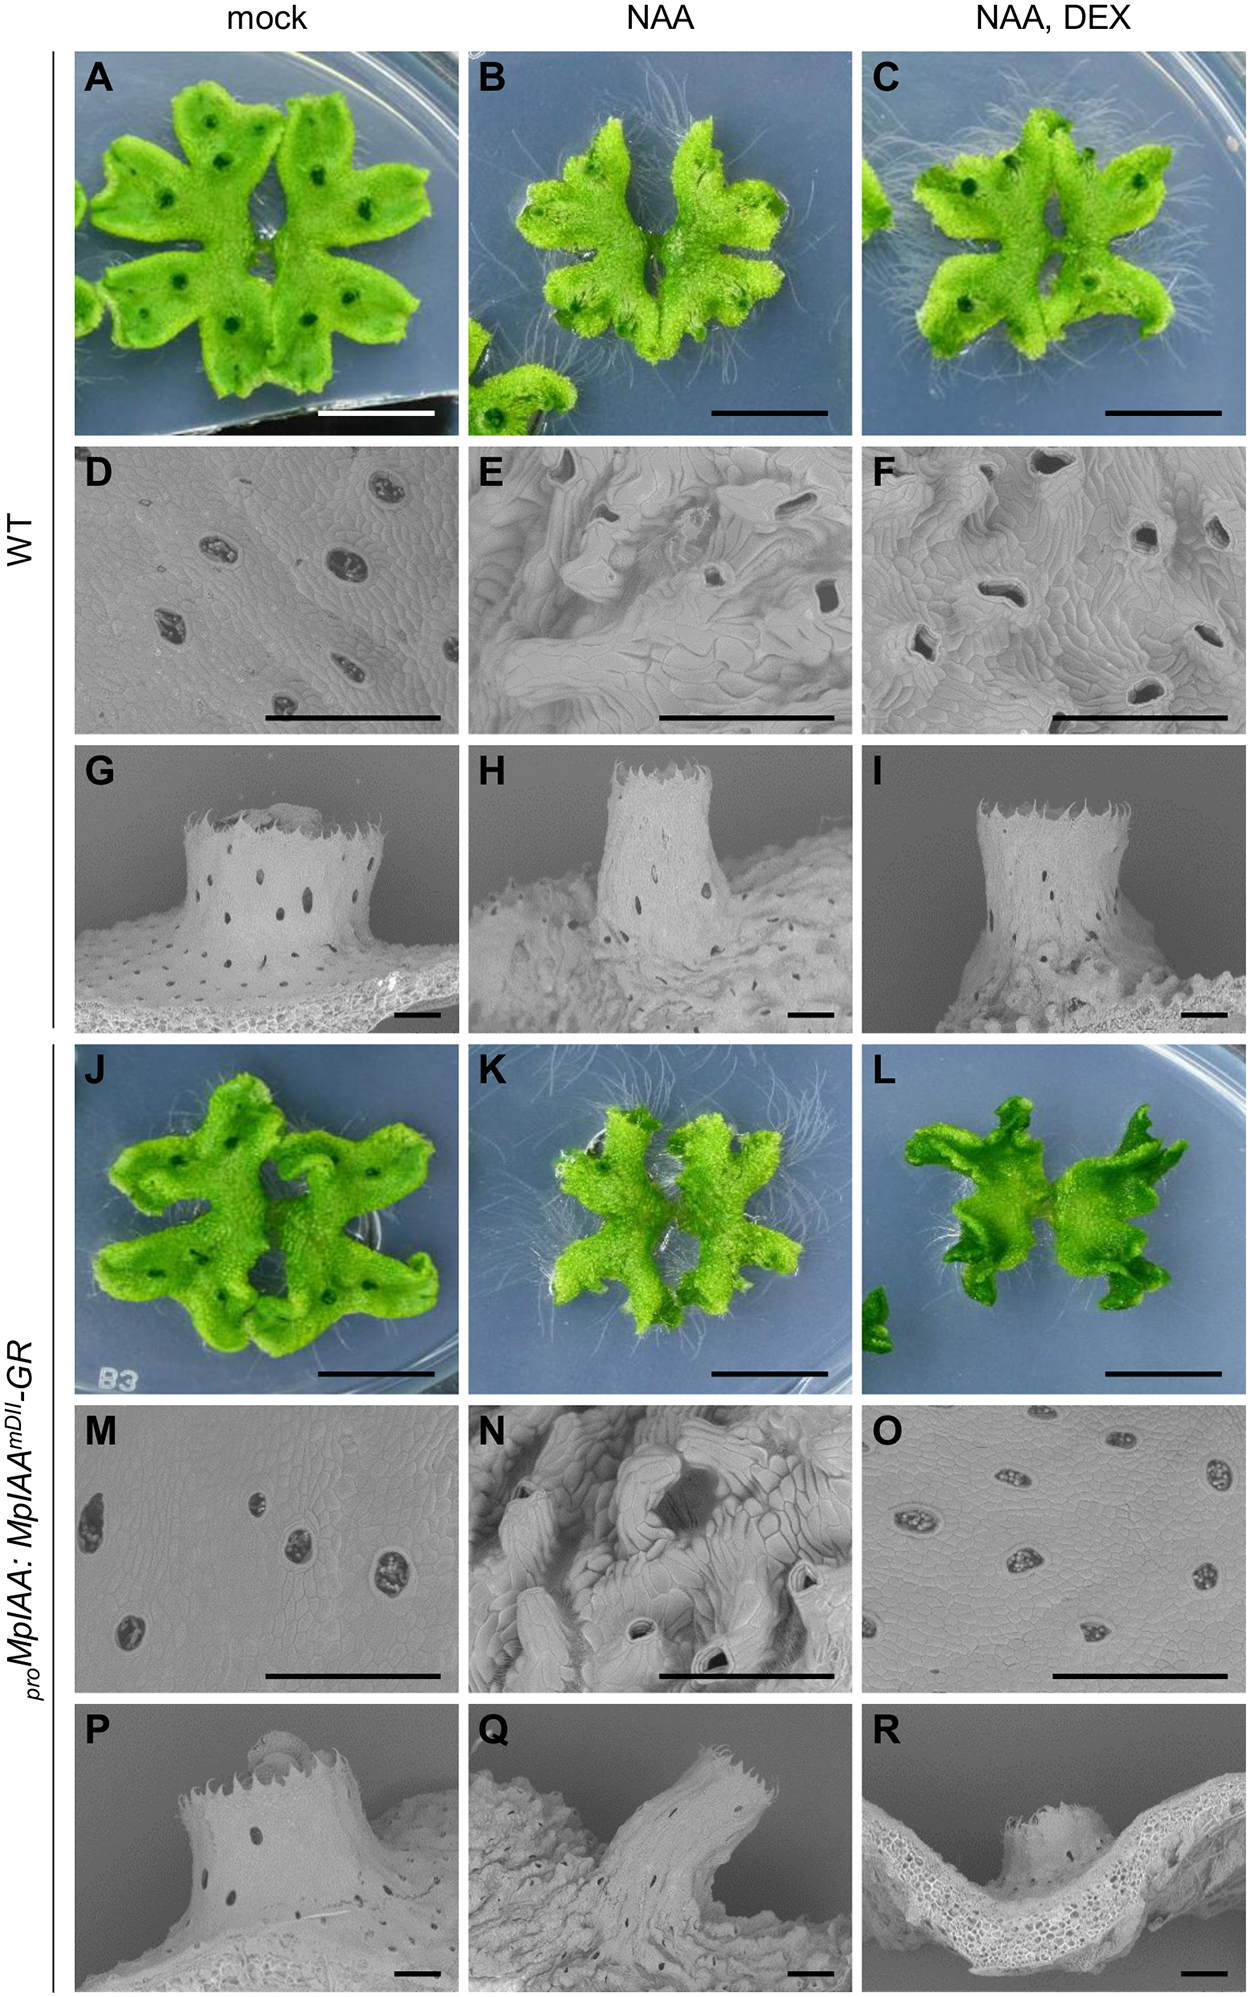 Effects of exogenous auxin on the morphology and cell shape.